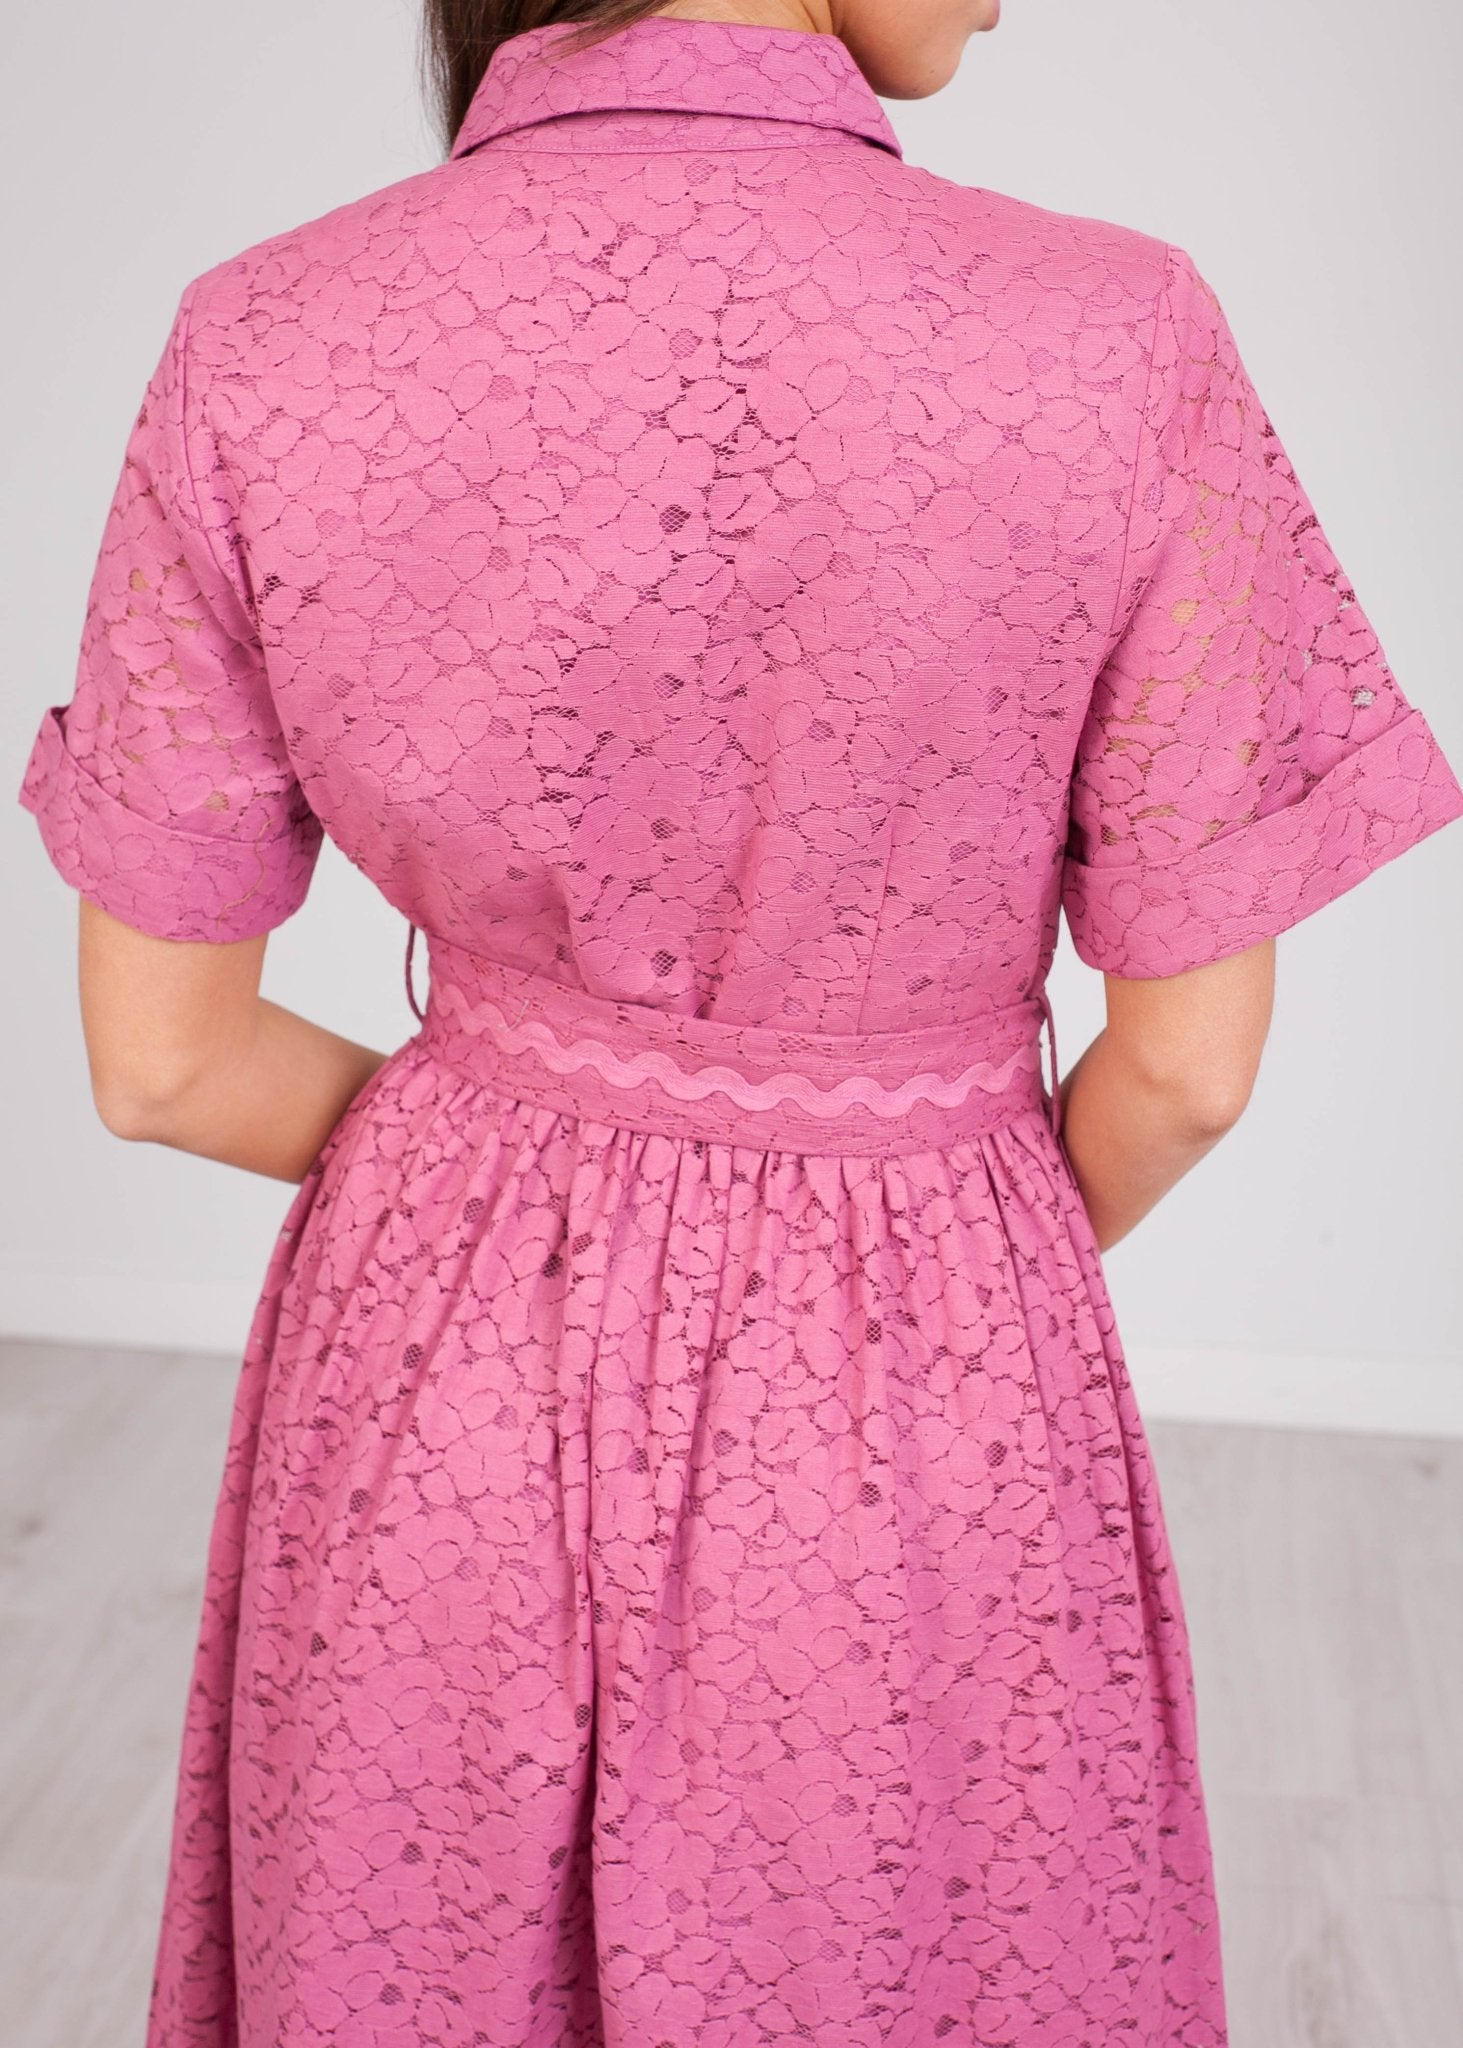 Emily Purple Lace Dress - The Walk in Wardrobe